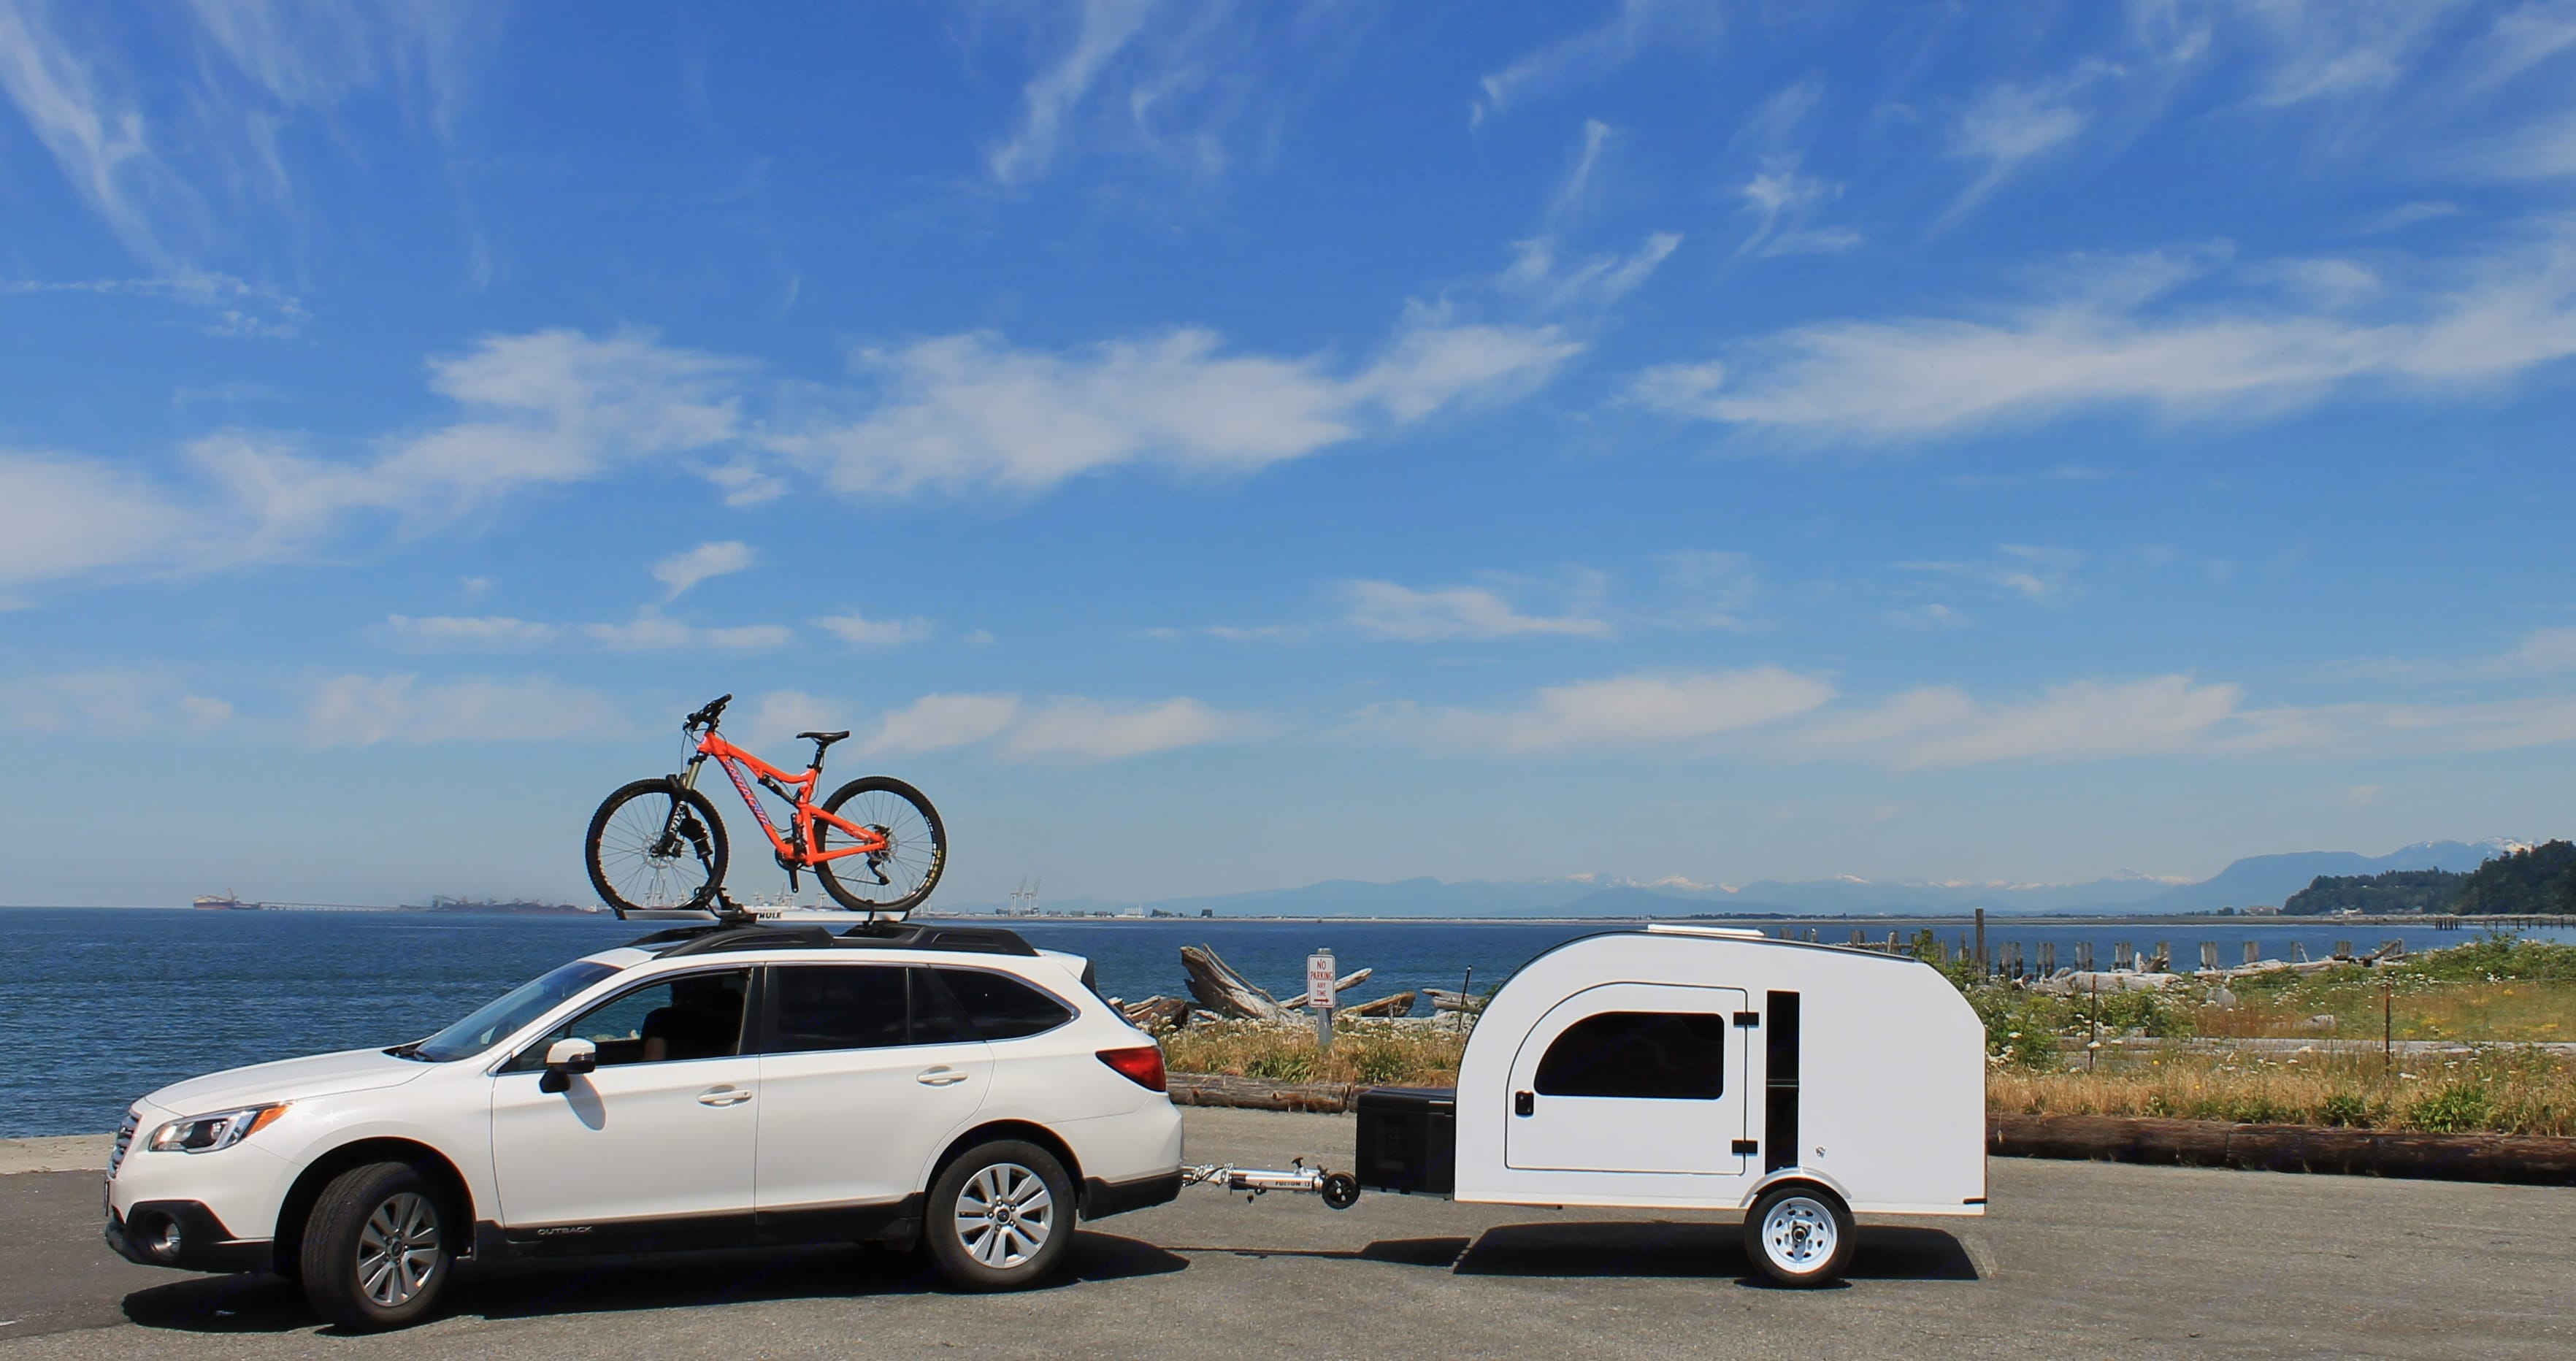 Lightweight (950lbs) camping trailer. DROPLET can be towed by most small/medium size cars. Check specs on droplet-trailer.com to see if your car is compatible.. DROPLET 58 2017